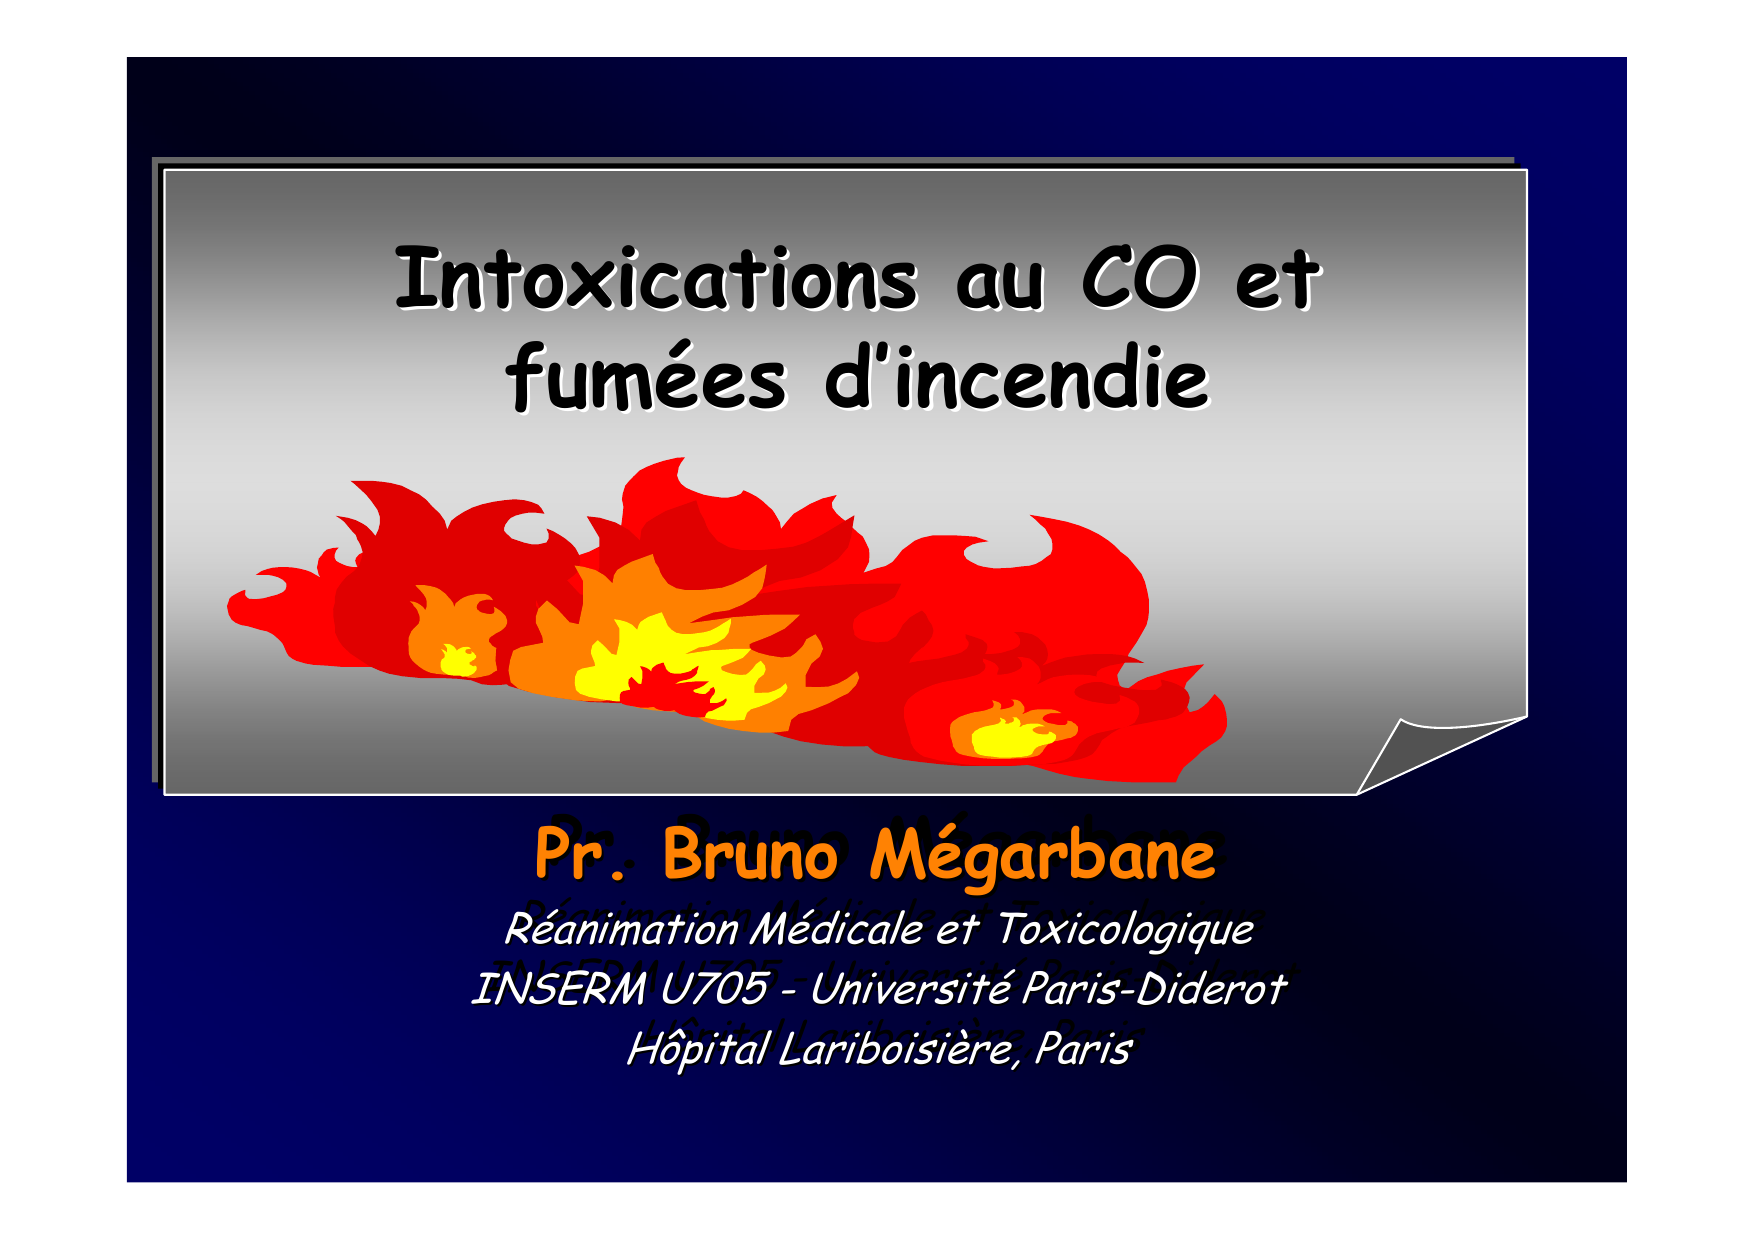 Intoxications au CO et fum é es d